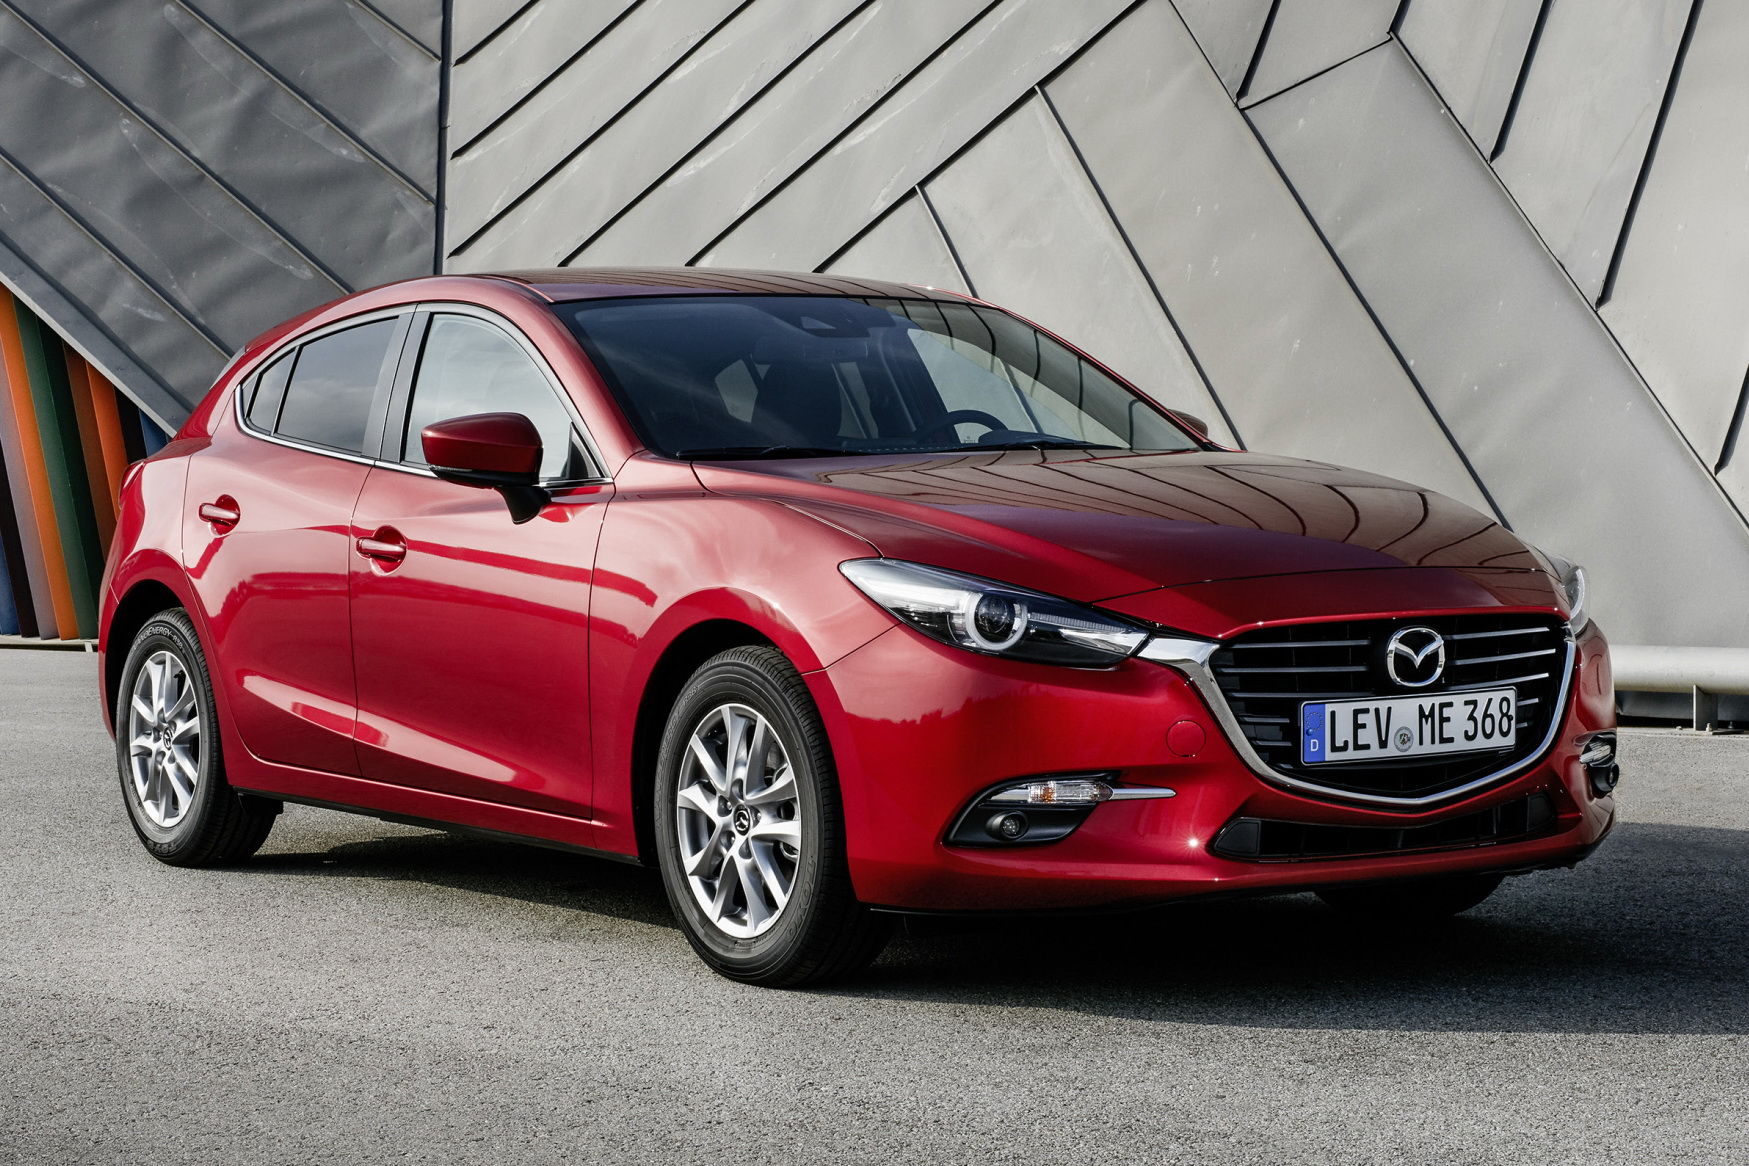 mazda 3 et cx 3 signature 2017 nouvelle s rie sp ciale chez mazda photo 2 l 39 argus. Black Bedroom Furniture Sets. Home Design Ideas